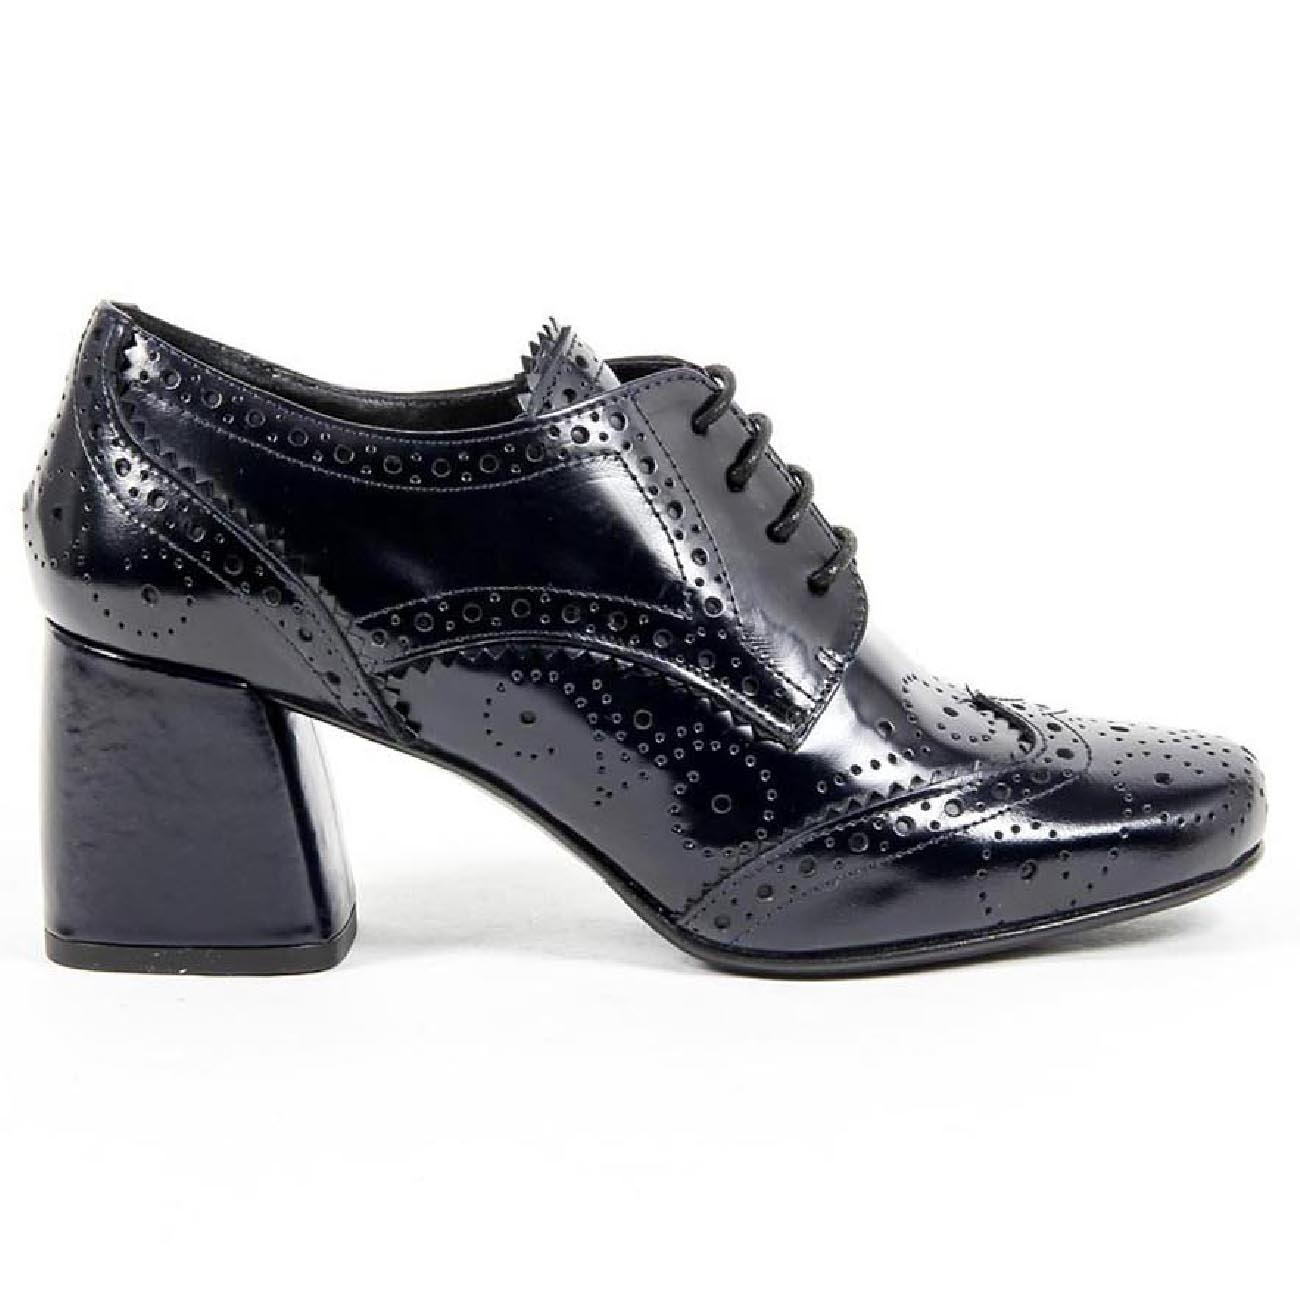 V 1969 Italia Womens Heeled Brogue Shoe B2460 AMALFI MORBIDO RIVER